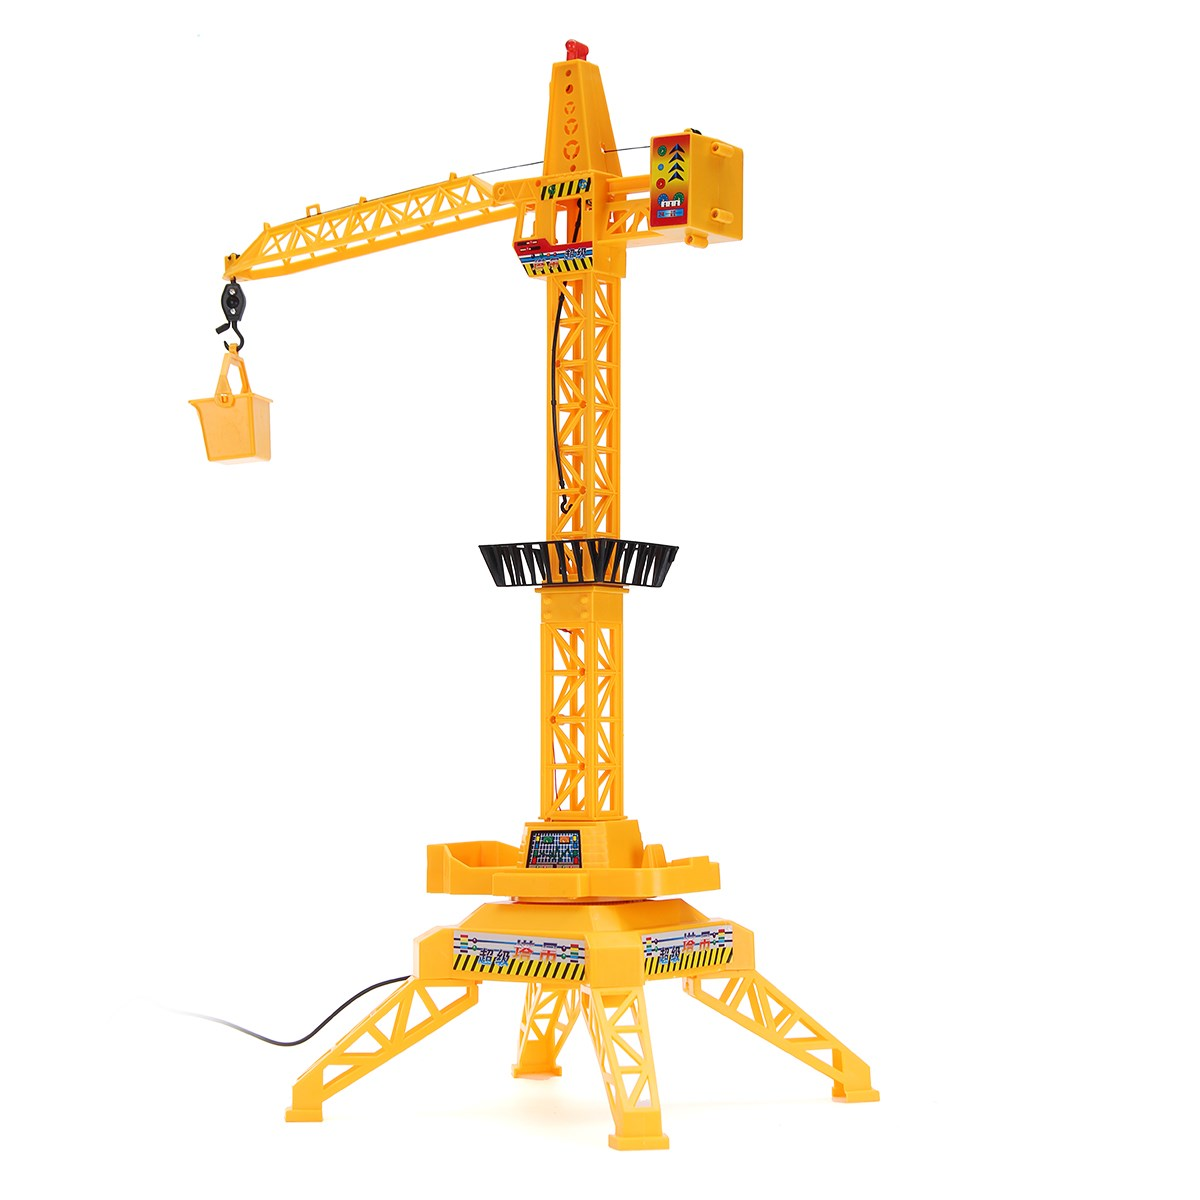 1:64 Remote Control Crane Hobby Kid Lift Construction Engineering Car Model Machinery Tower Cable Mining Car Crane Toy Gift